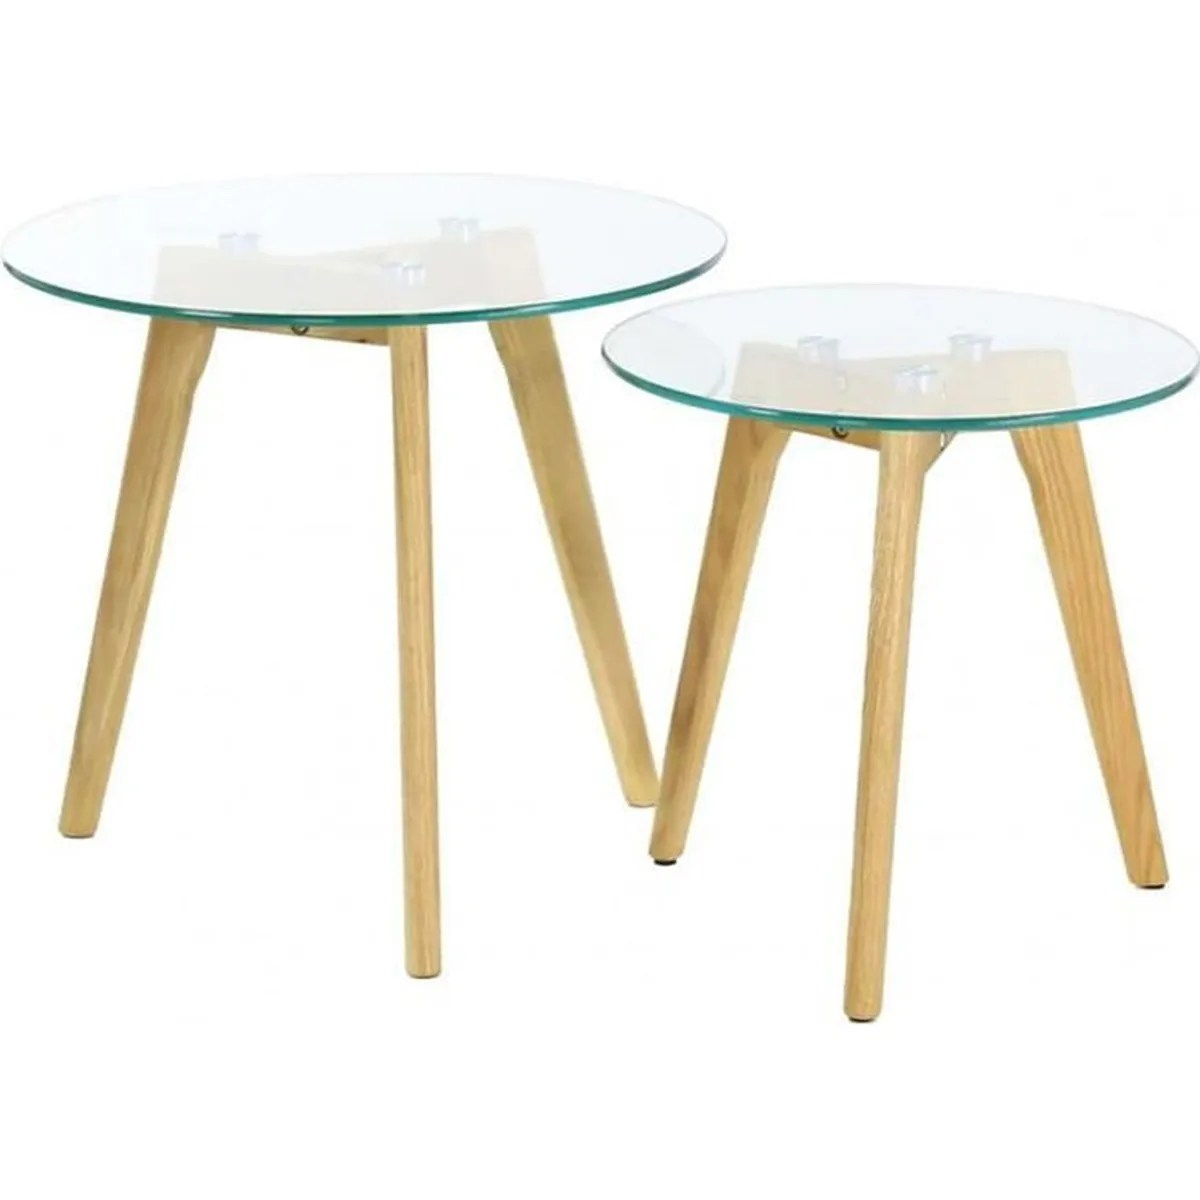 Tables Gigognes Lot De 2 Tables Gigognes En Bois Et Verre Trempé Coloris Transparent